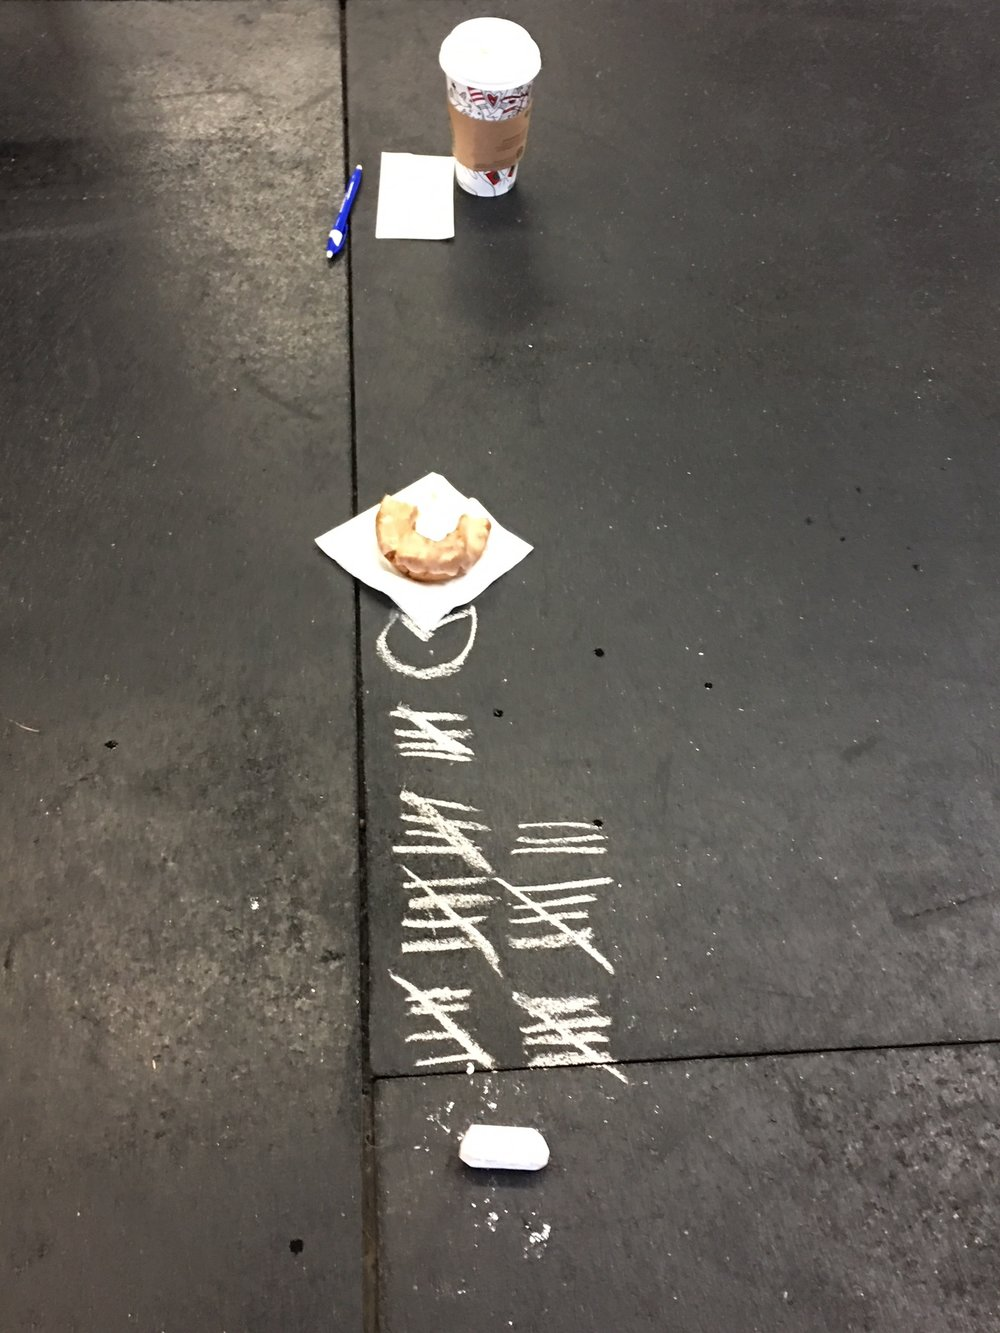 Jim gave himself a donut goal once he reached a certain number of burpees